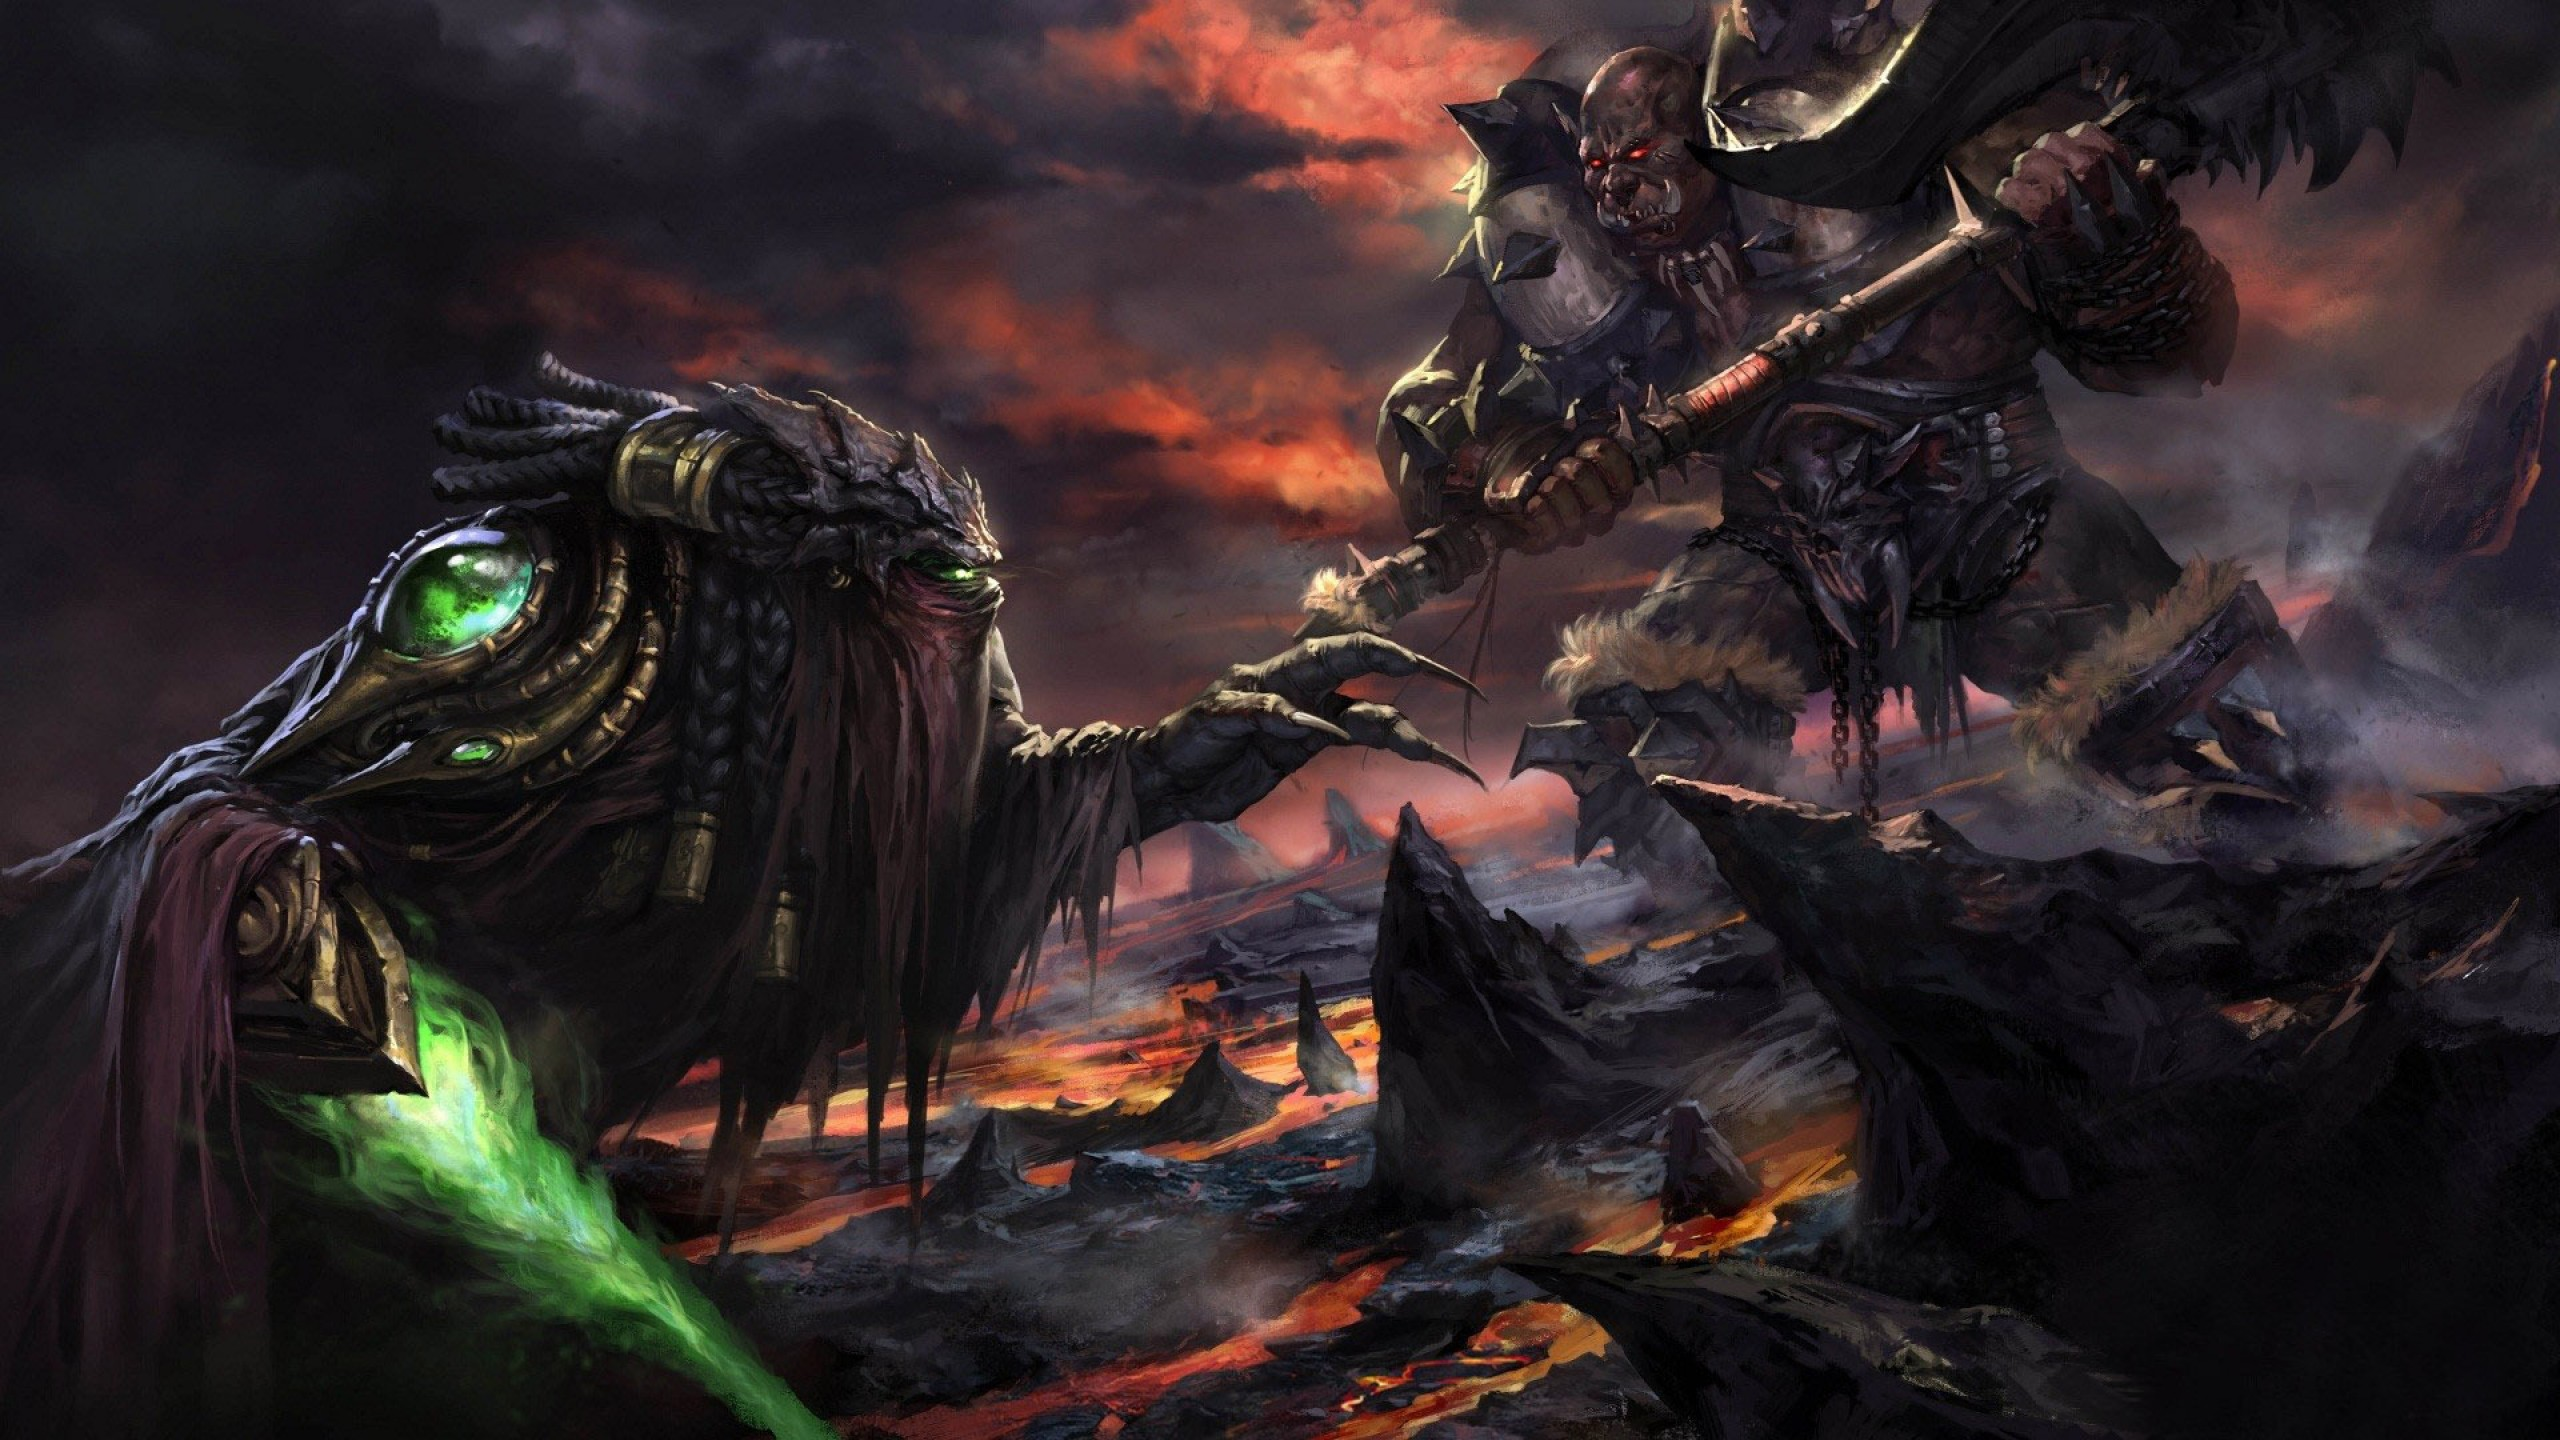 Deathwing Hd Wallpapers Backgrounds 2560x1440